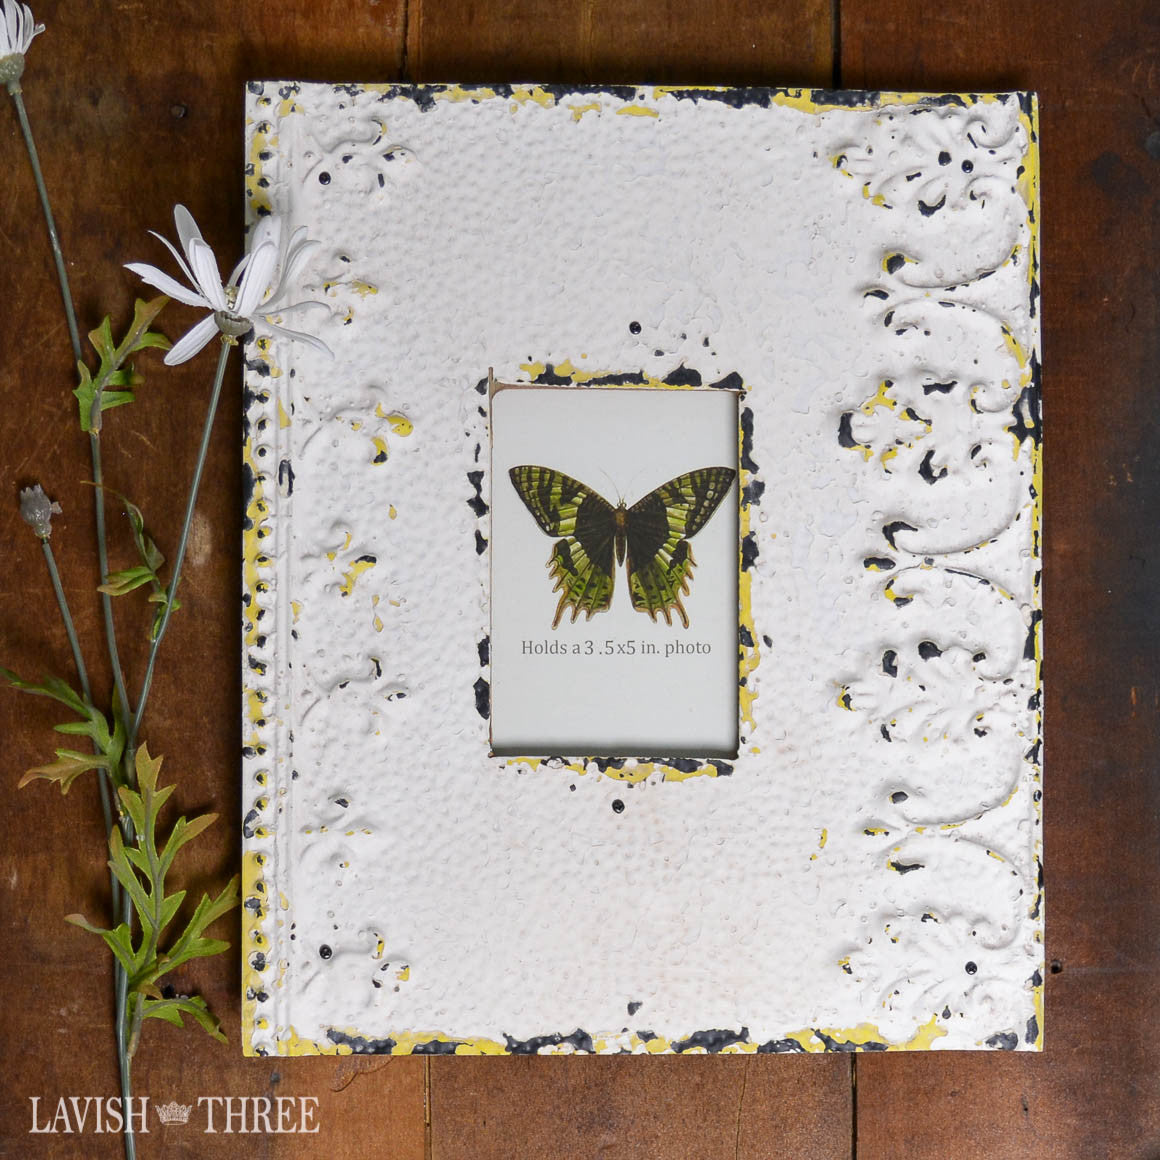 Shabby chic romantic vintage farmhouse embossed white metal frame hints of yellow